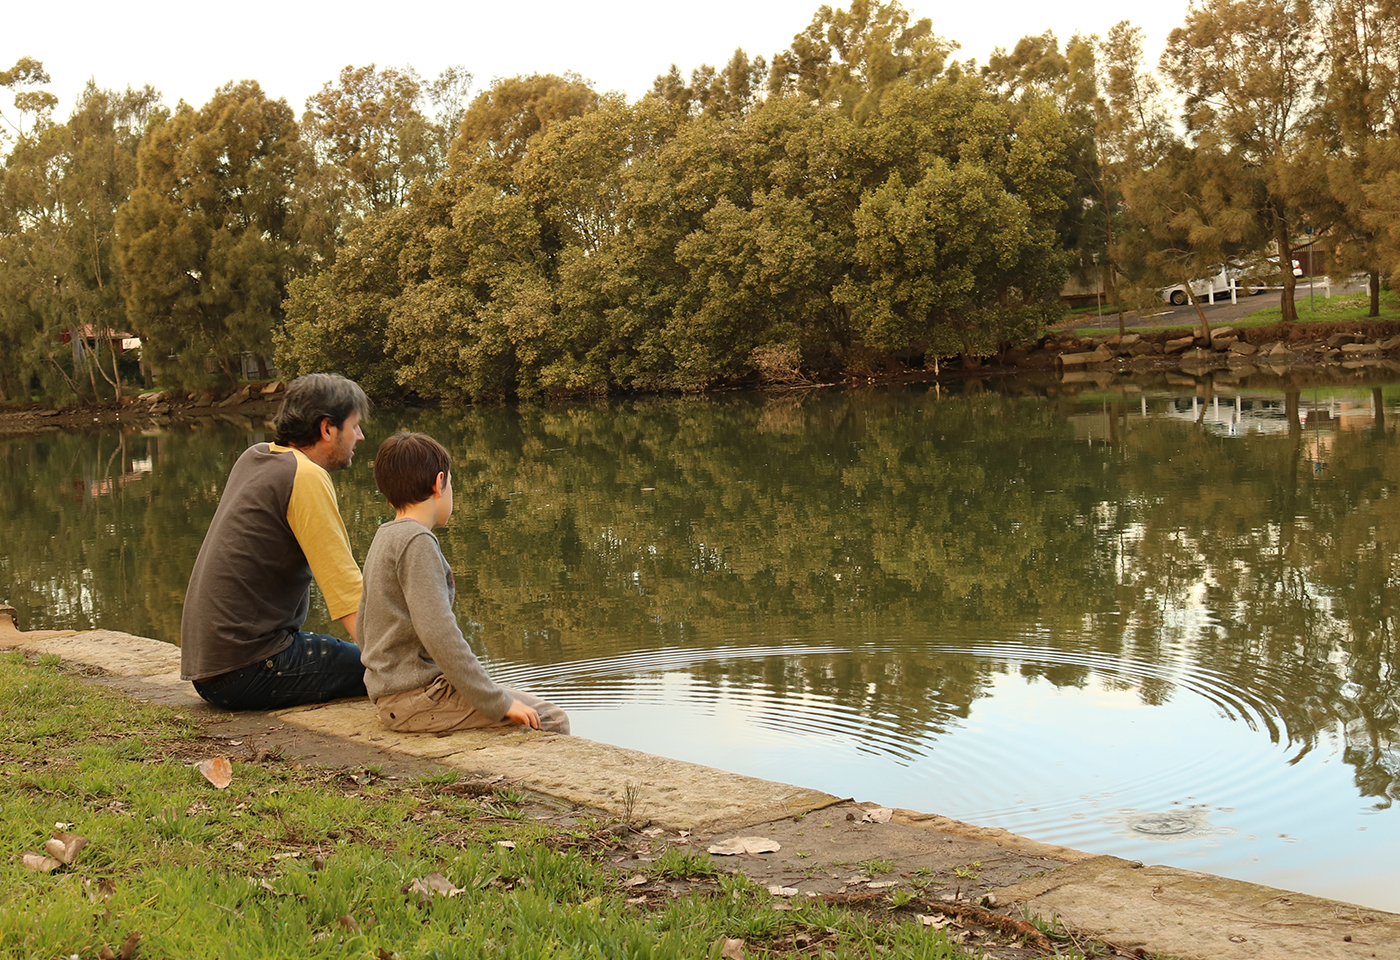 Father and son sitting by the lake